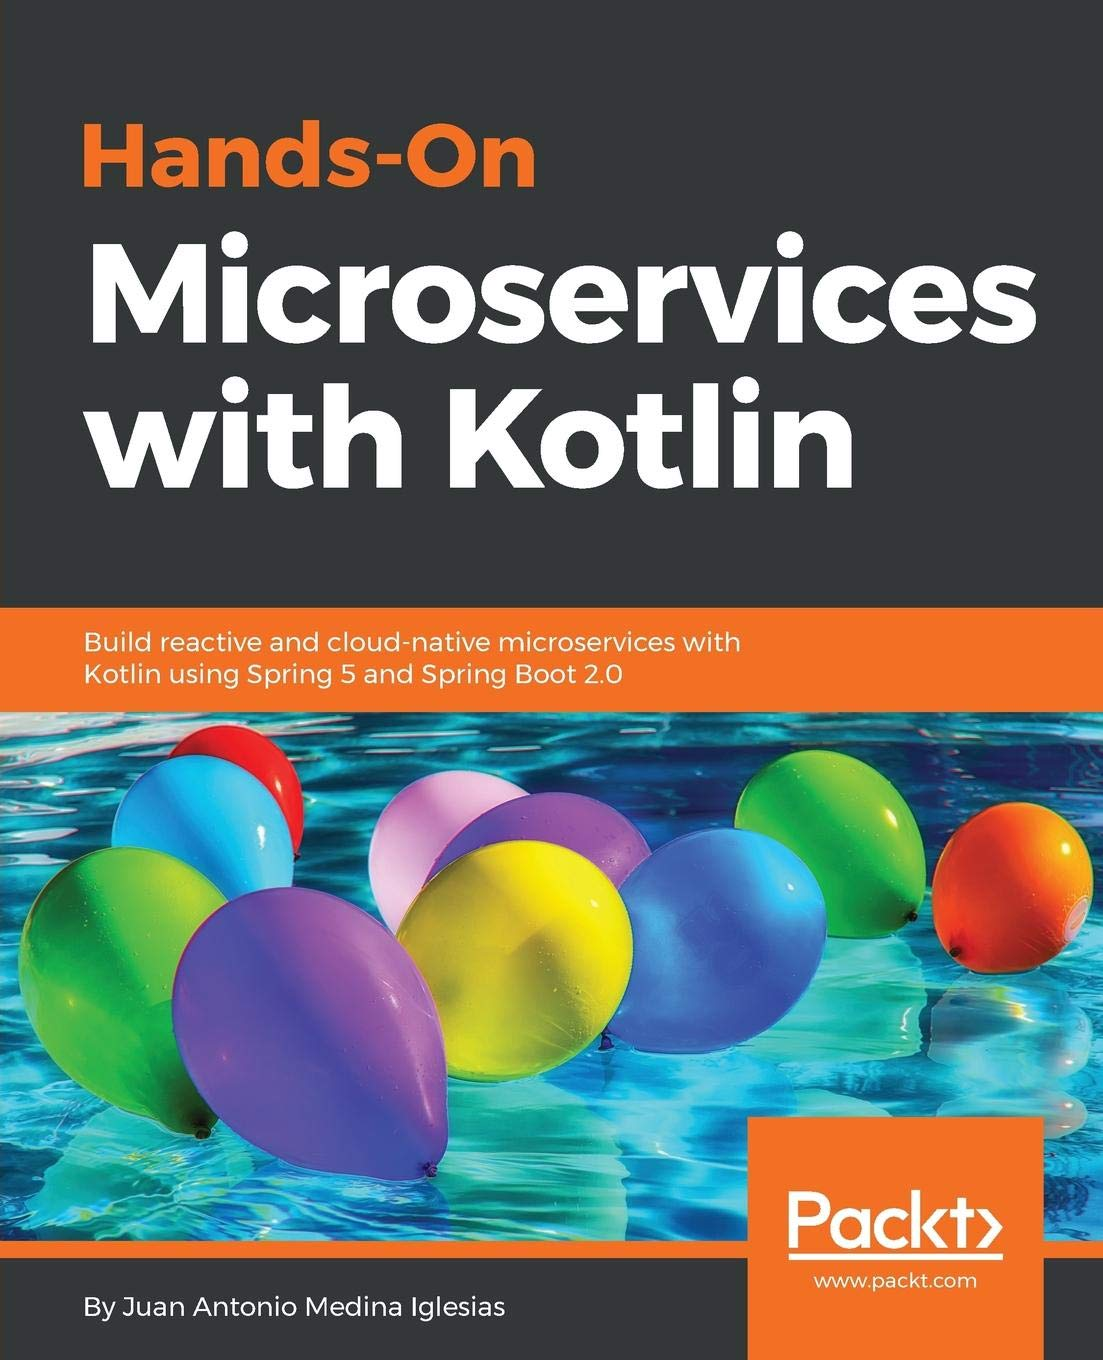 Hands-On Microservices with Kotlin: Build reactive and cloud